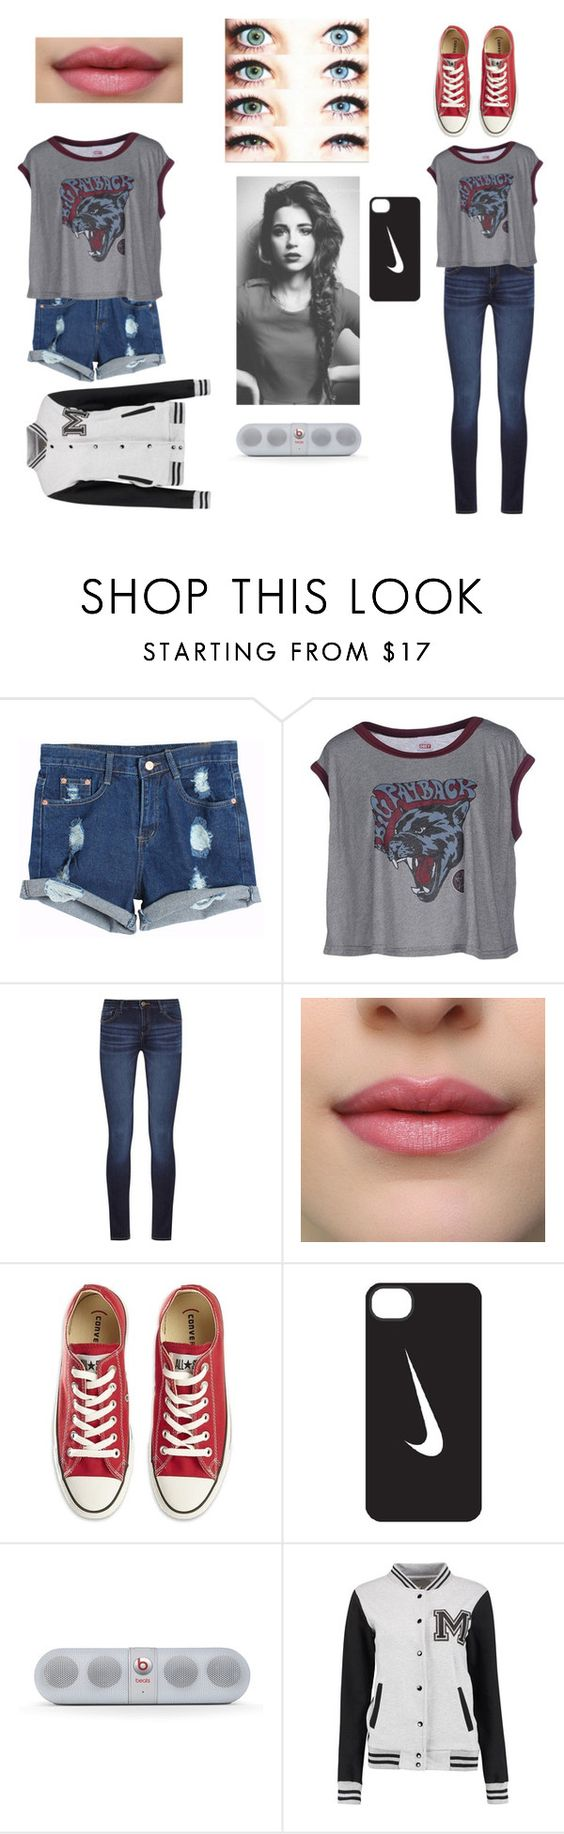 """Idk2"" by bo3blackgunsniper ❤ liked on Polyvore featuring OBEY Clothing, DL1961 Premium Denim, Converse, NIKE and Beats by Dr. Dre"